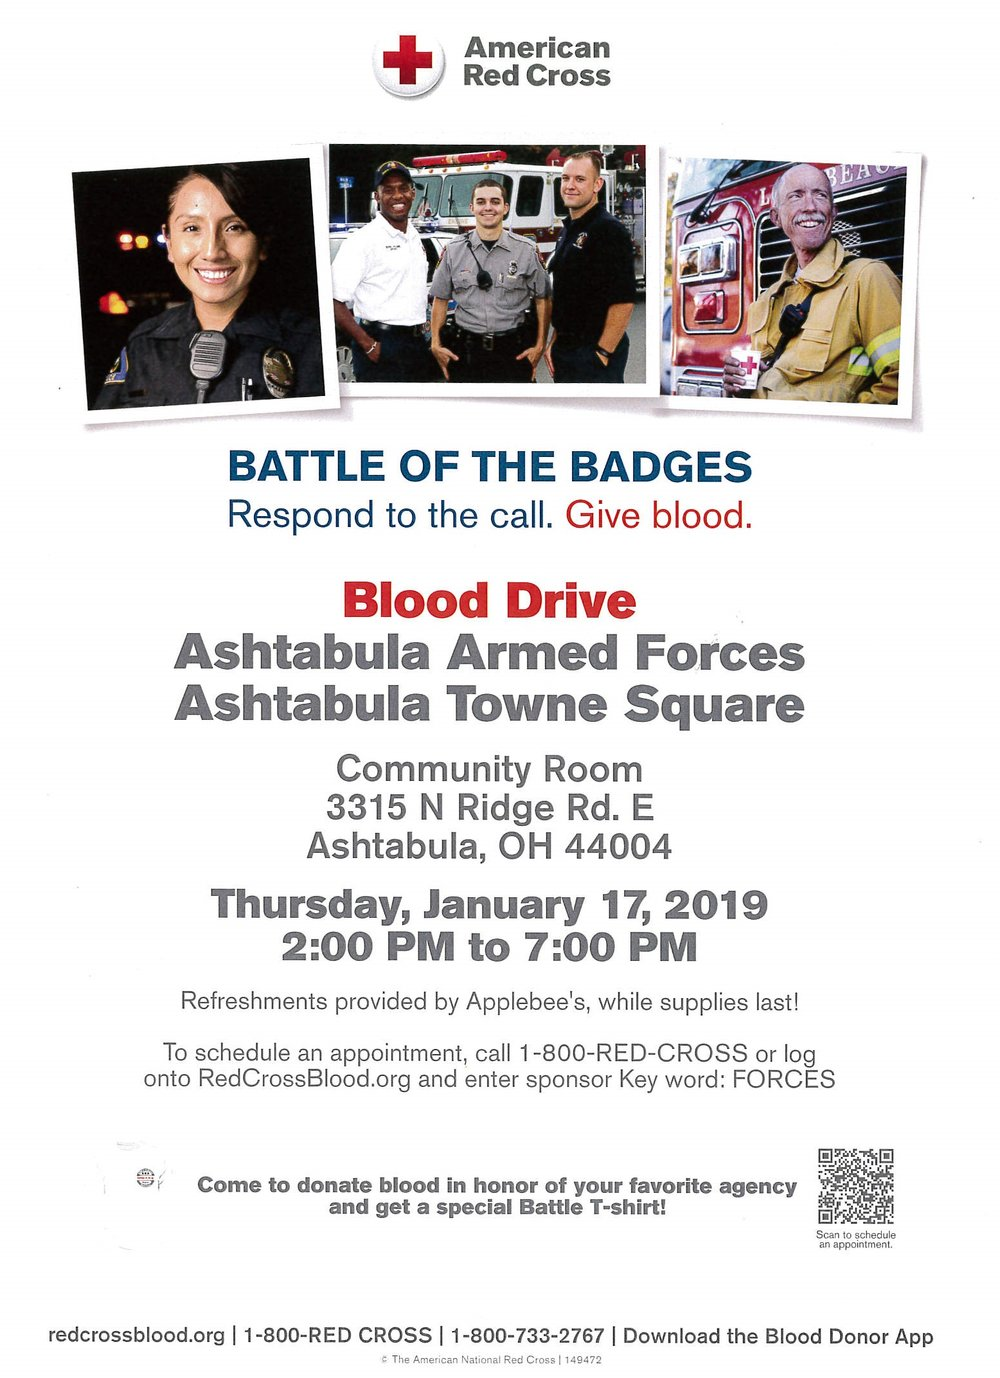 Blood Drive Armed Forces 1.17.2019.jpg